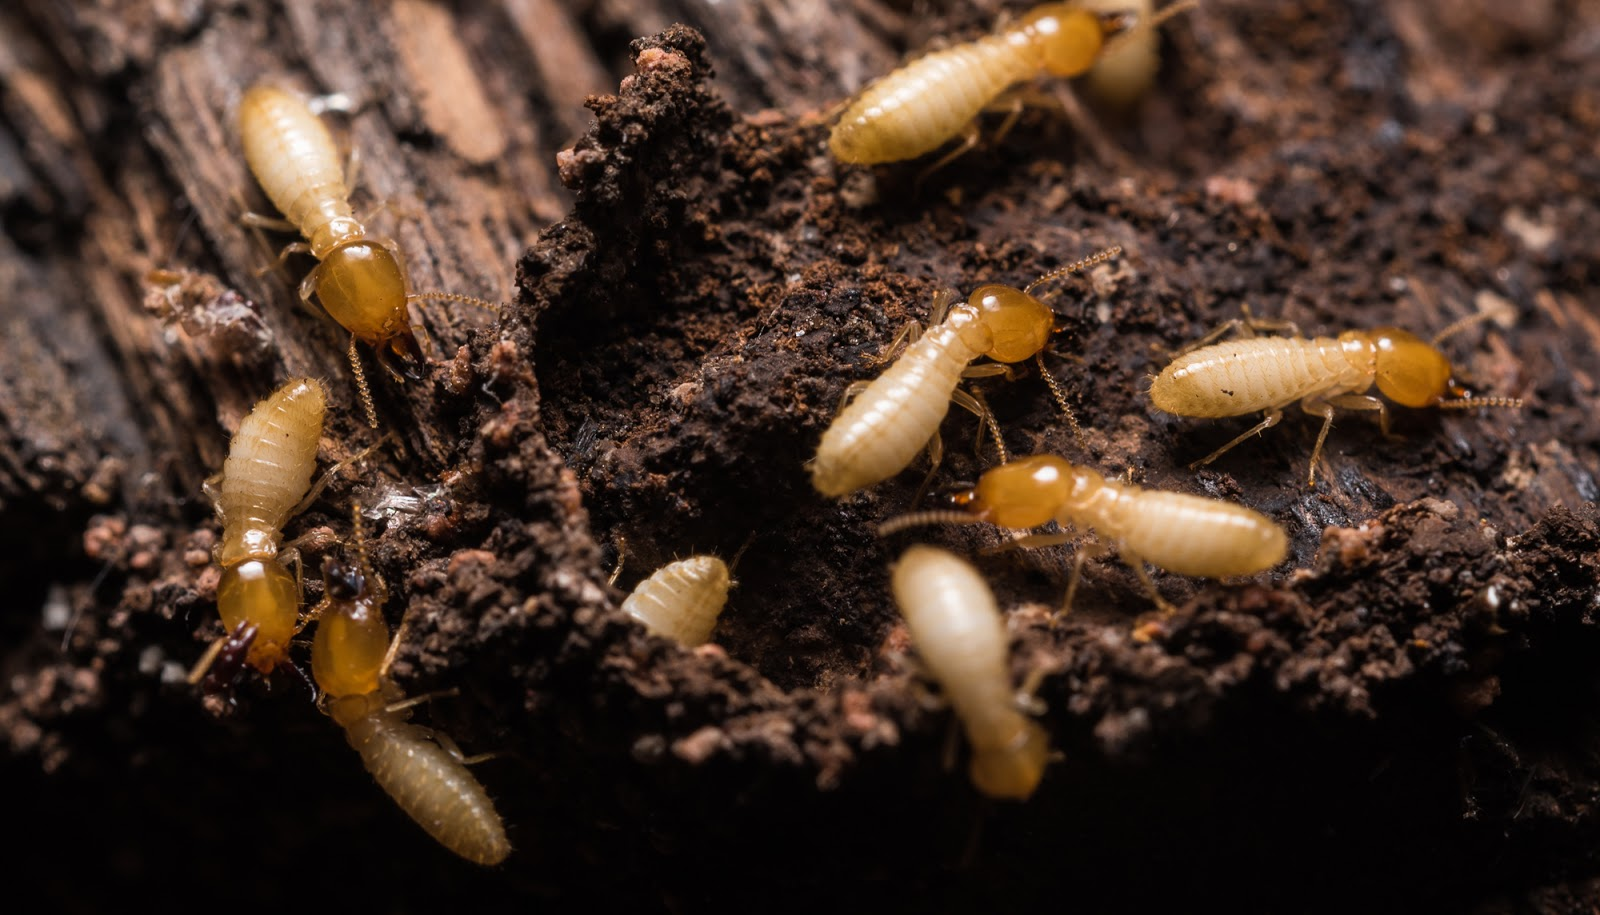 Pest inspections look for signs of pests like termites crawling on timber.